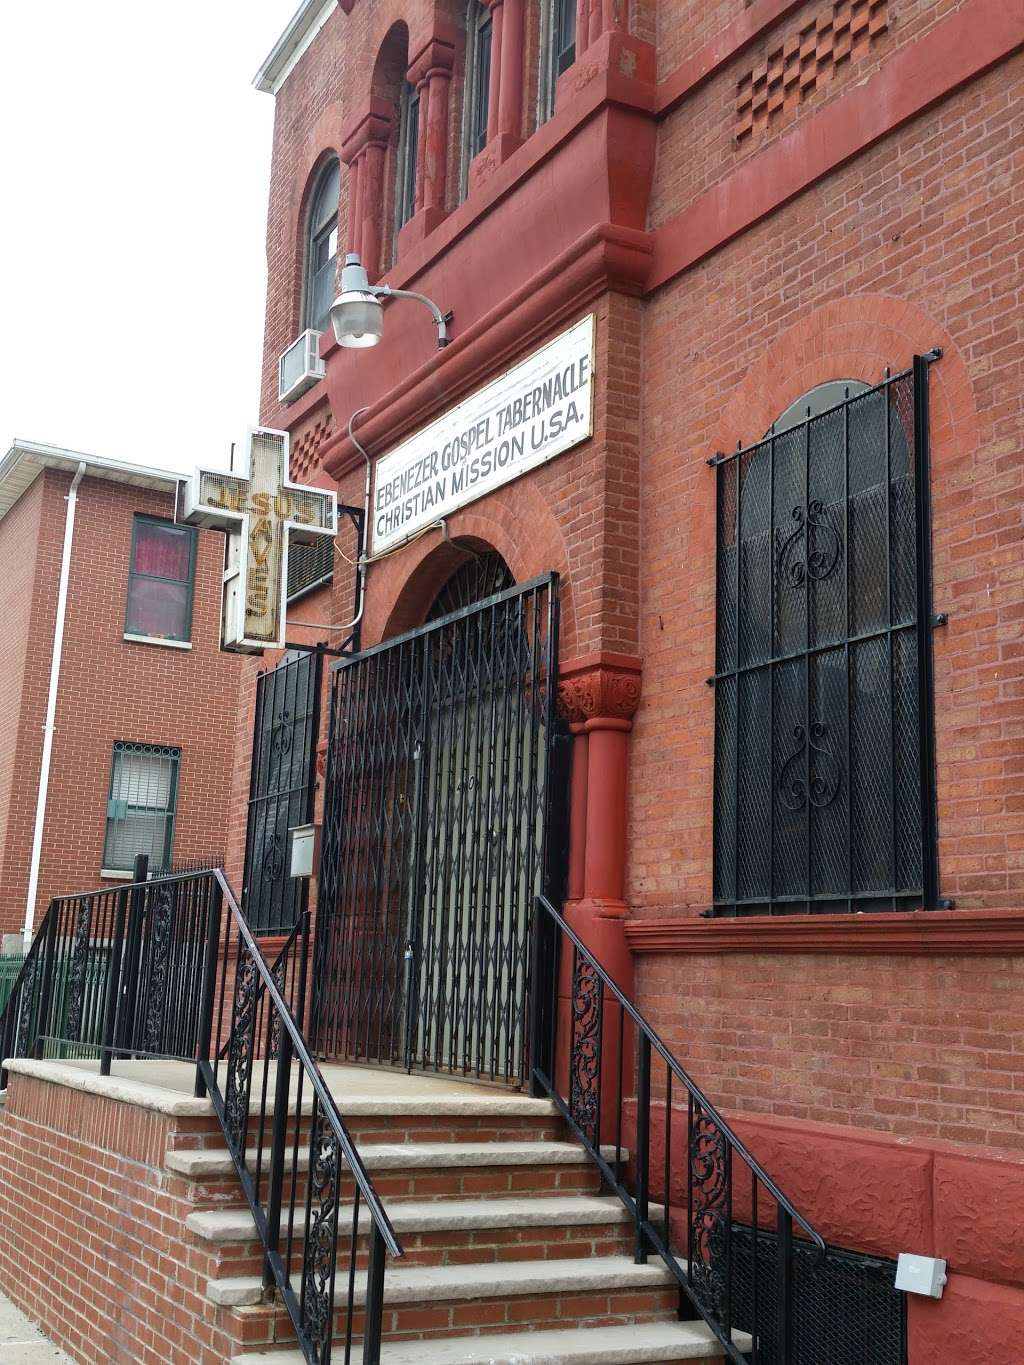 Ebenezer Gospel Tabernacle - church  | Photo 1 of 3 | Address: 470 Throop Ave, Brooklyn, NY 11221, USA | Phone: (718) 574-5838